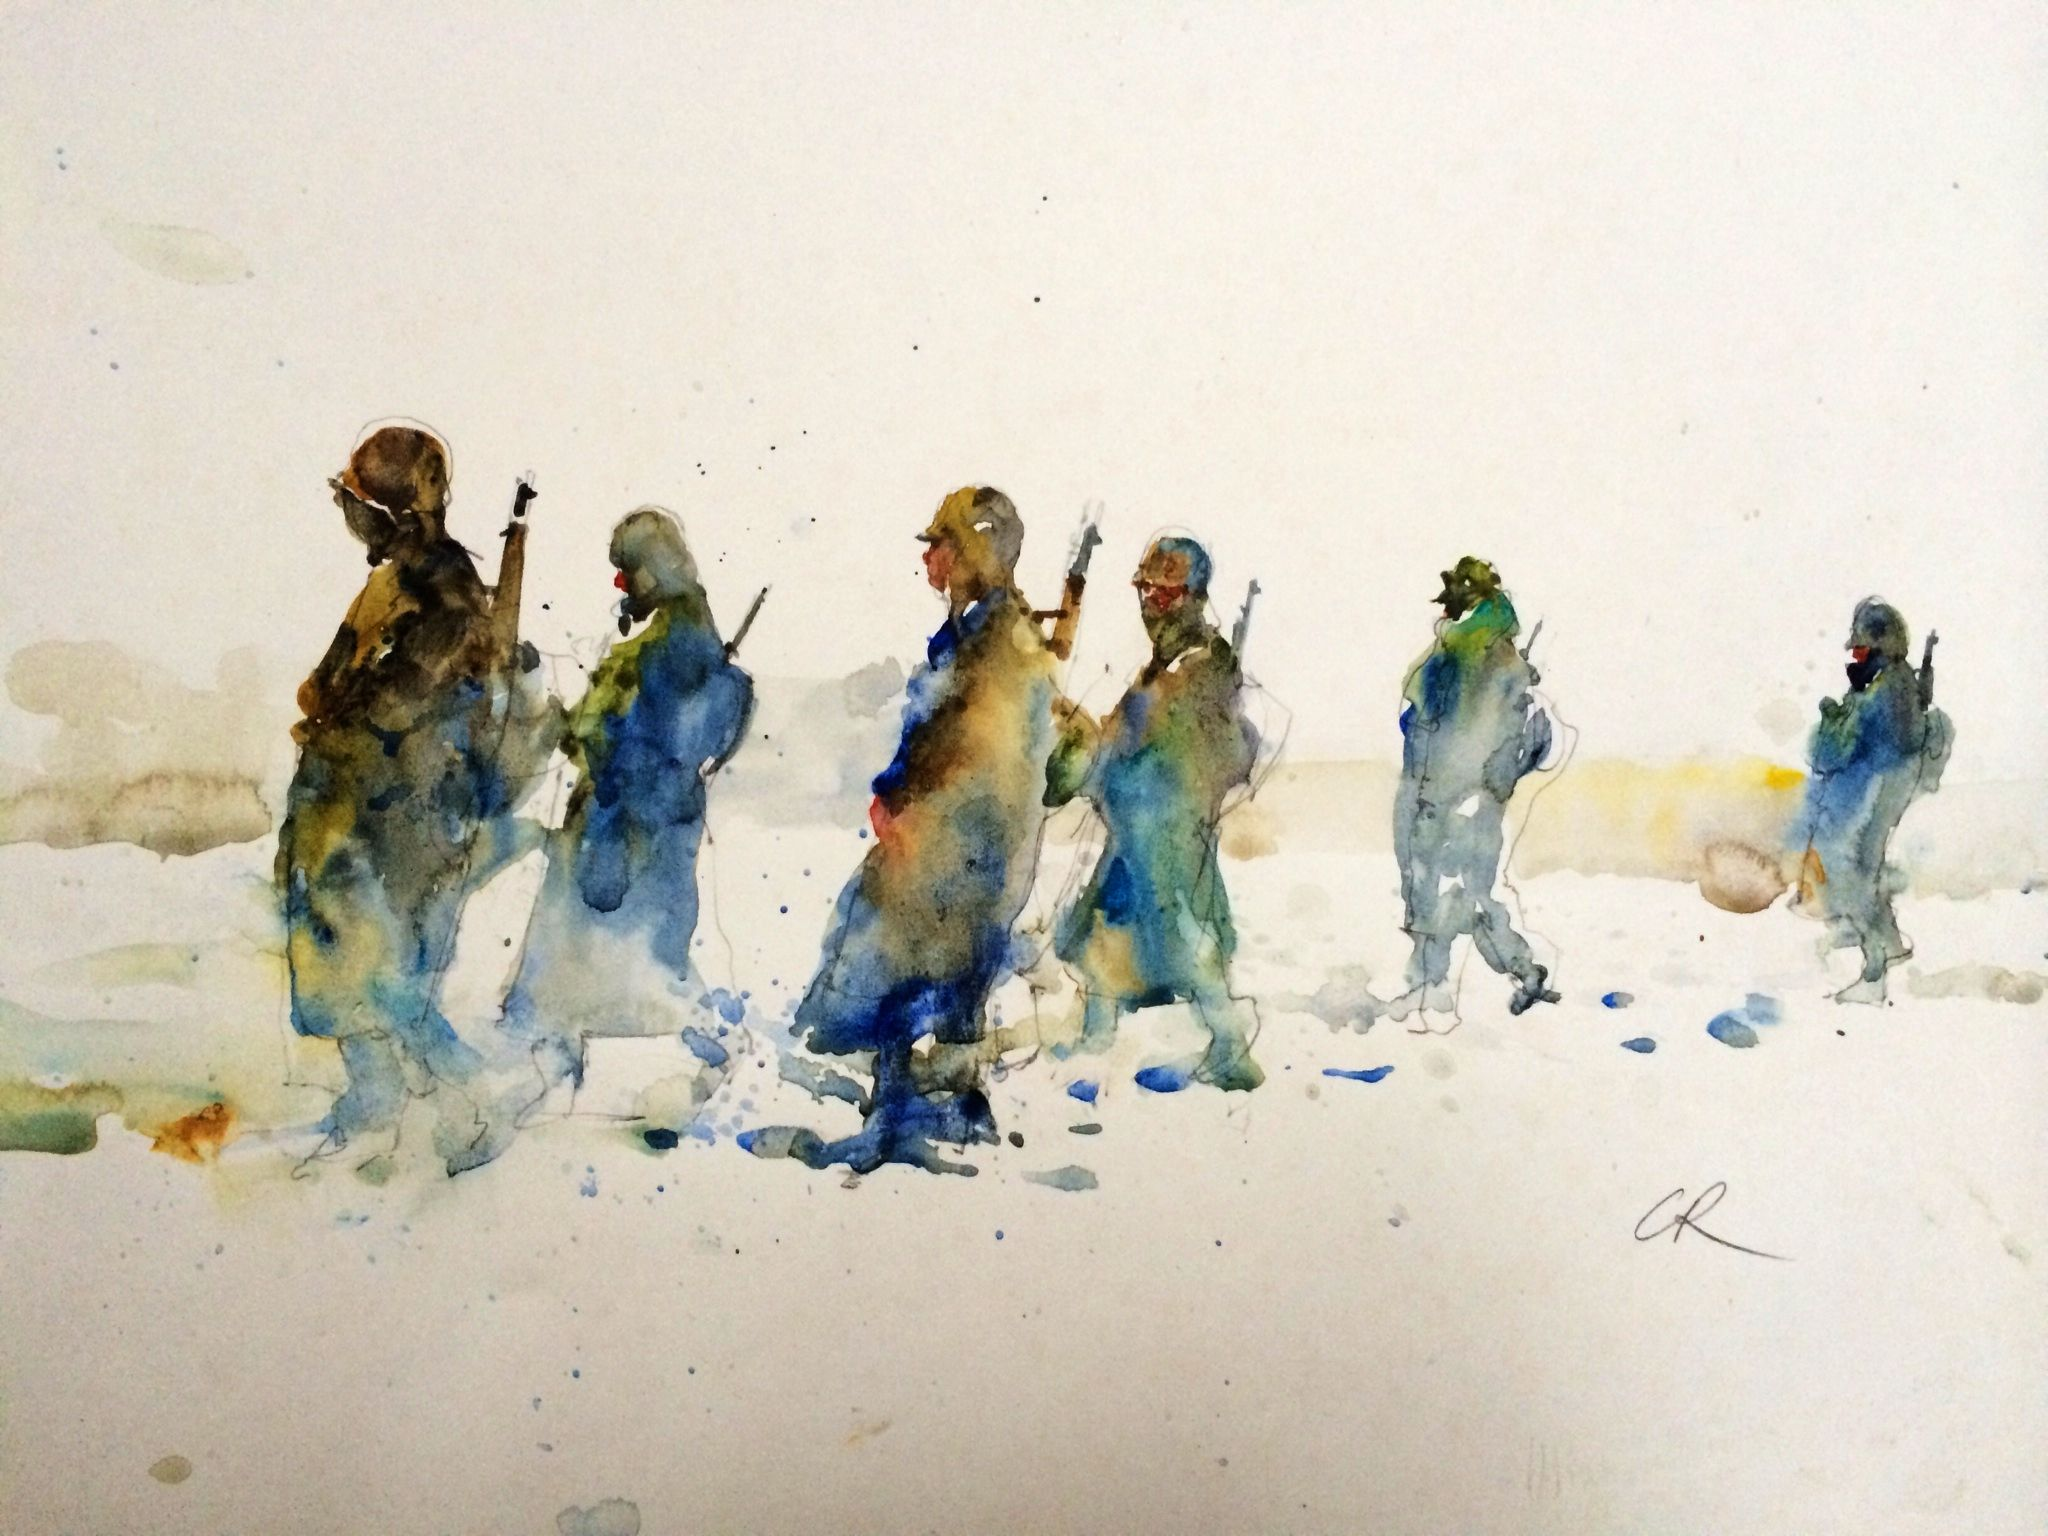 2048x1536 Marines Marching In Korea During The War.watercolor.by Charles